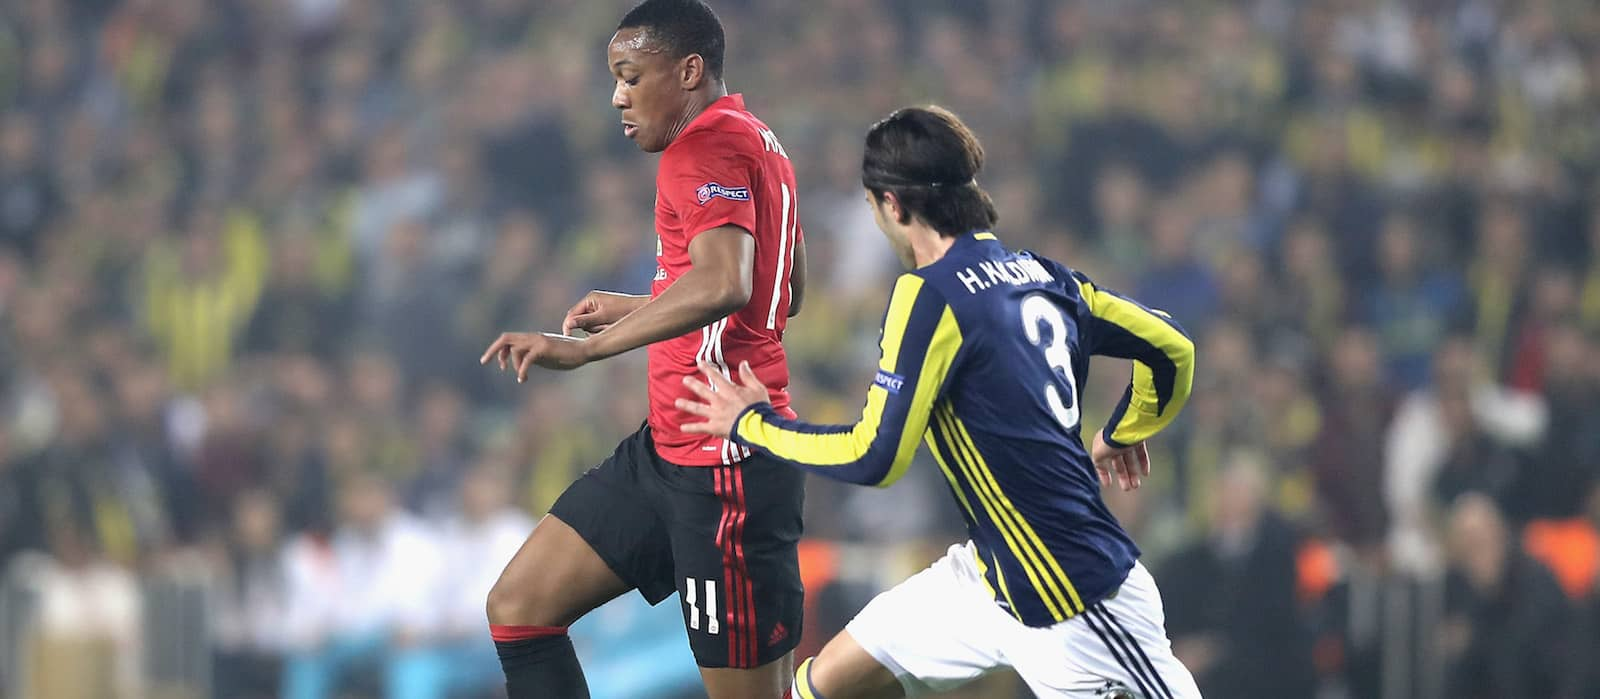 Man United fans impressed with Anthony Martial's display despite Fenerbahce defeat